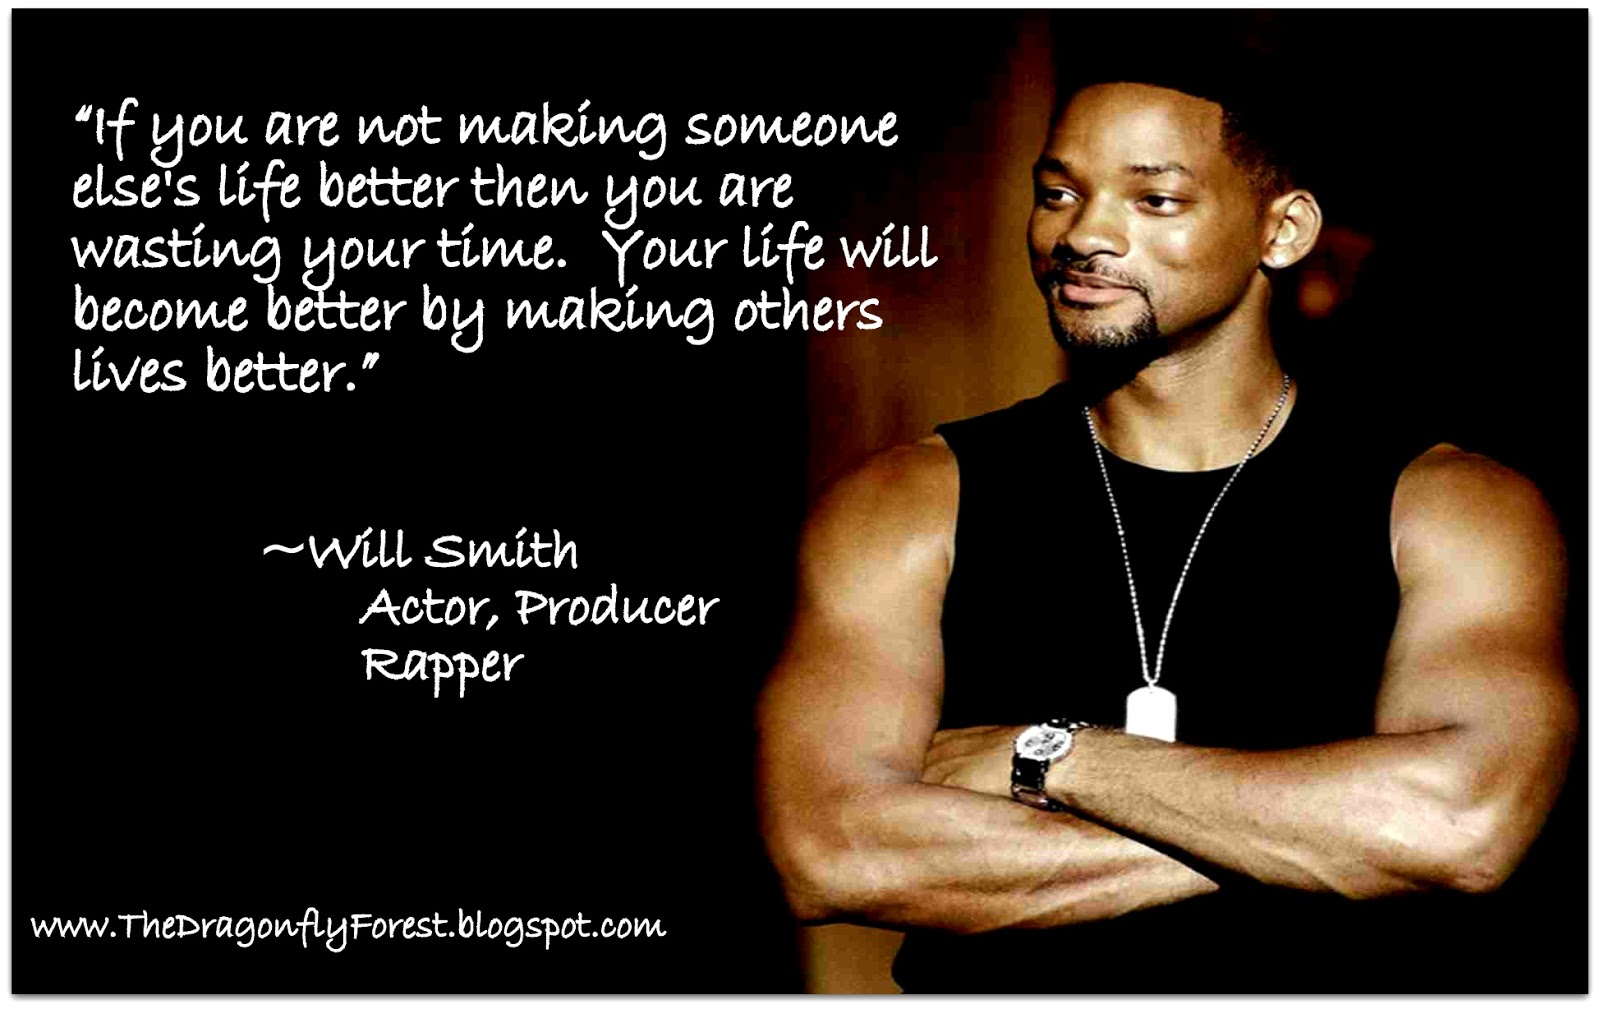 Dyslexia quotes from famous people quotesgram - Will Smith Quotes Quotesgram